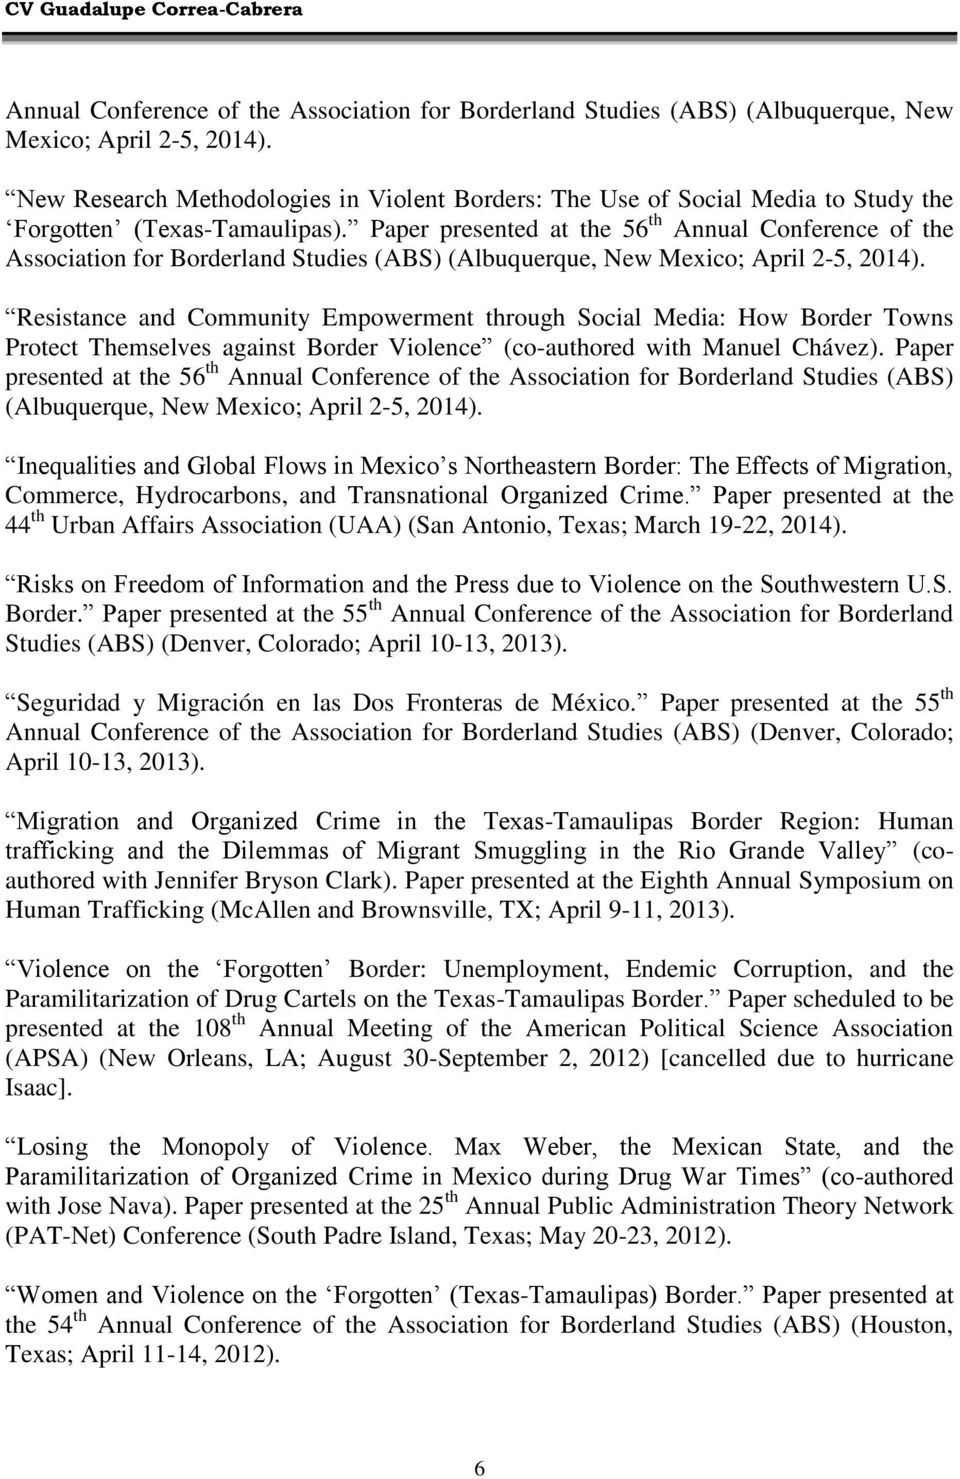 Paper presented at the 56 th  Resistance and Community Empowerment through Social Media: How Border Towns Protect Themselves against Border Violence (co-authored with Manuel Chávez).